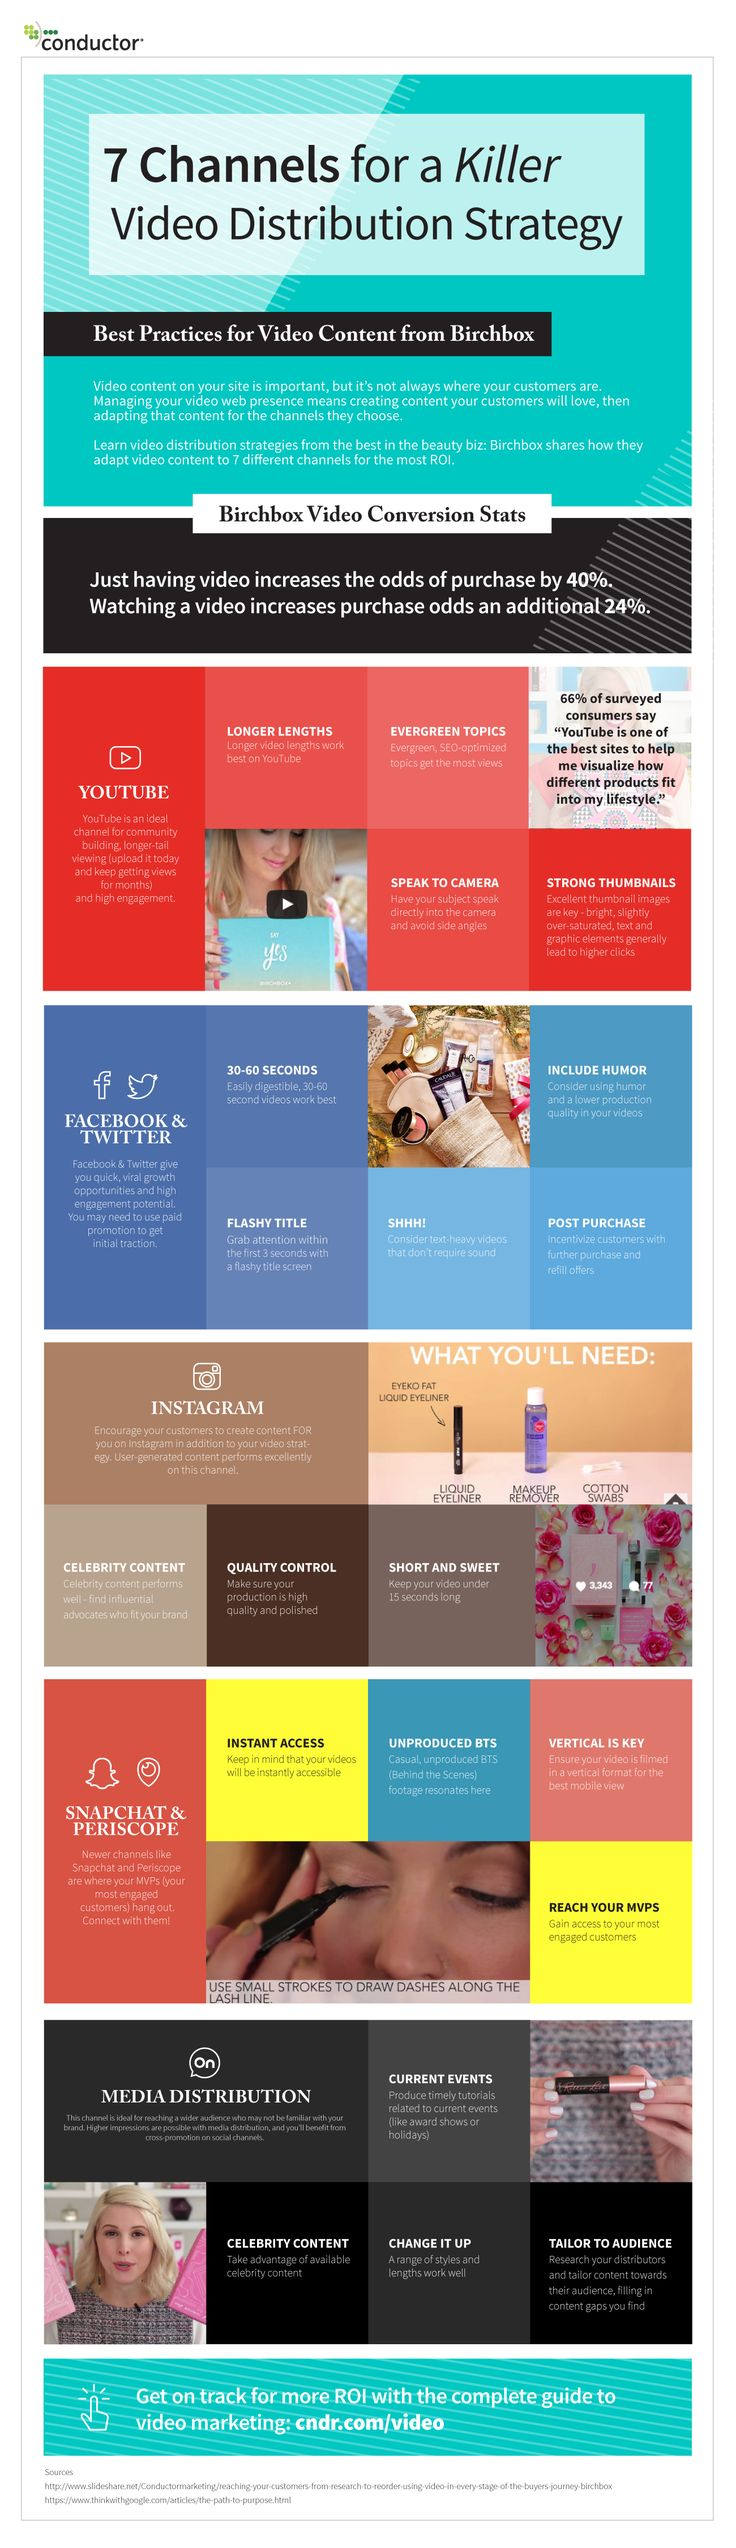 7 Channels for a killer Video Distribution Strategy from Birchbox. Best Practices for Video Content Infographic